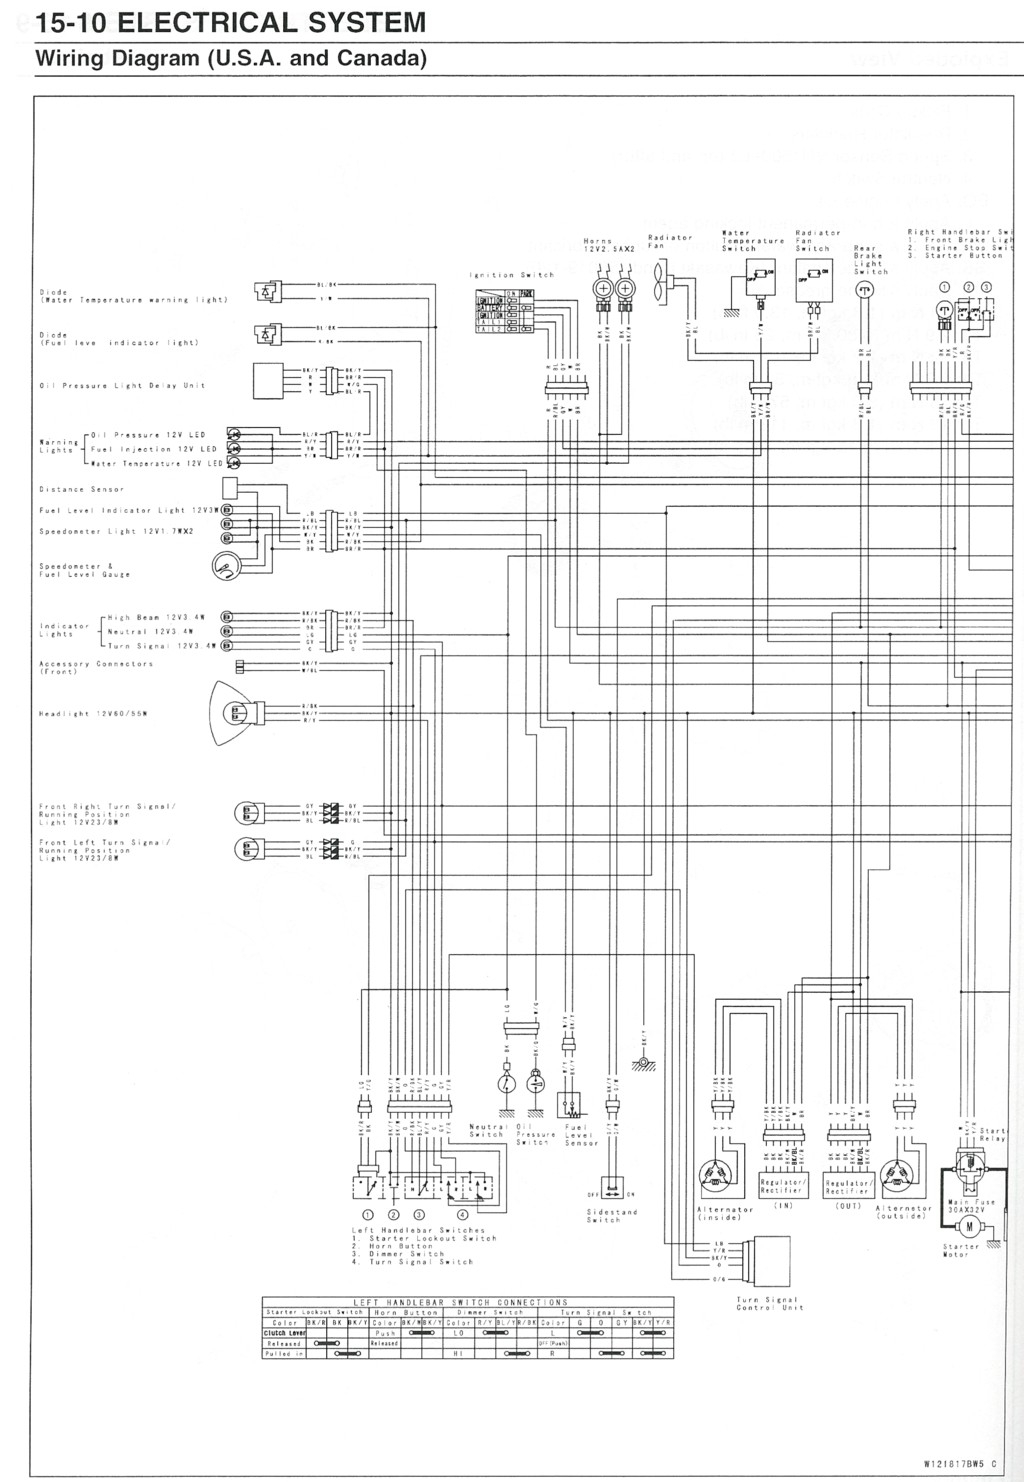 nomad_wiring_diagram_carbed_p1 vulcan wiring diagrams gadget's fixit page  at sewacar.co